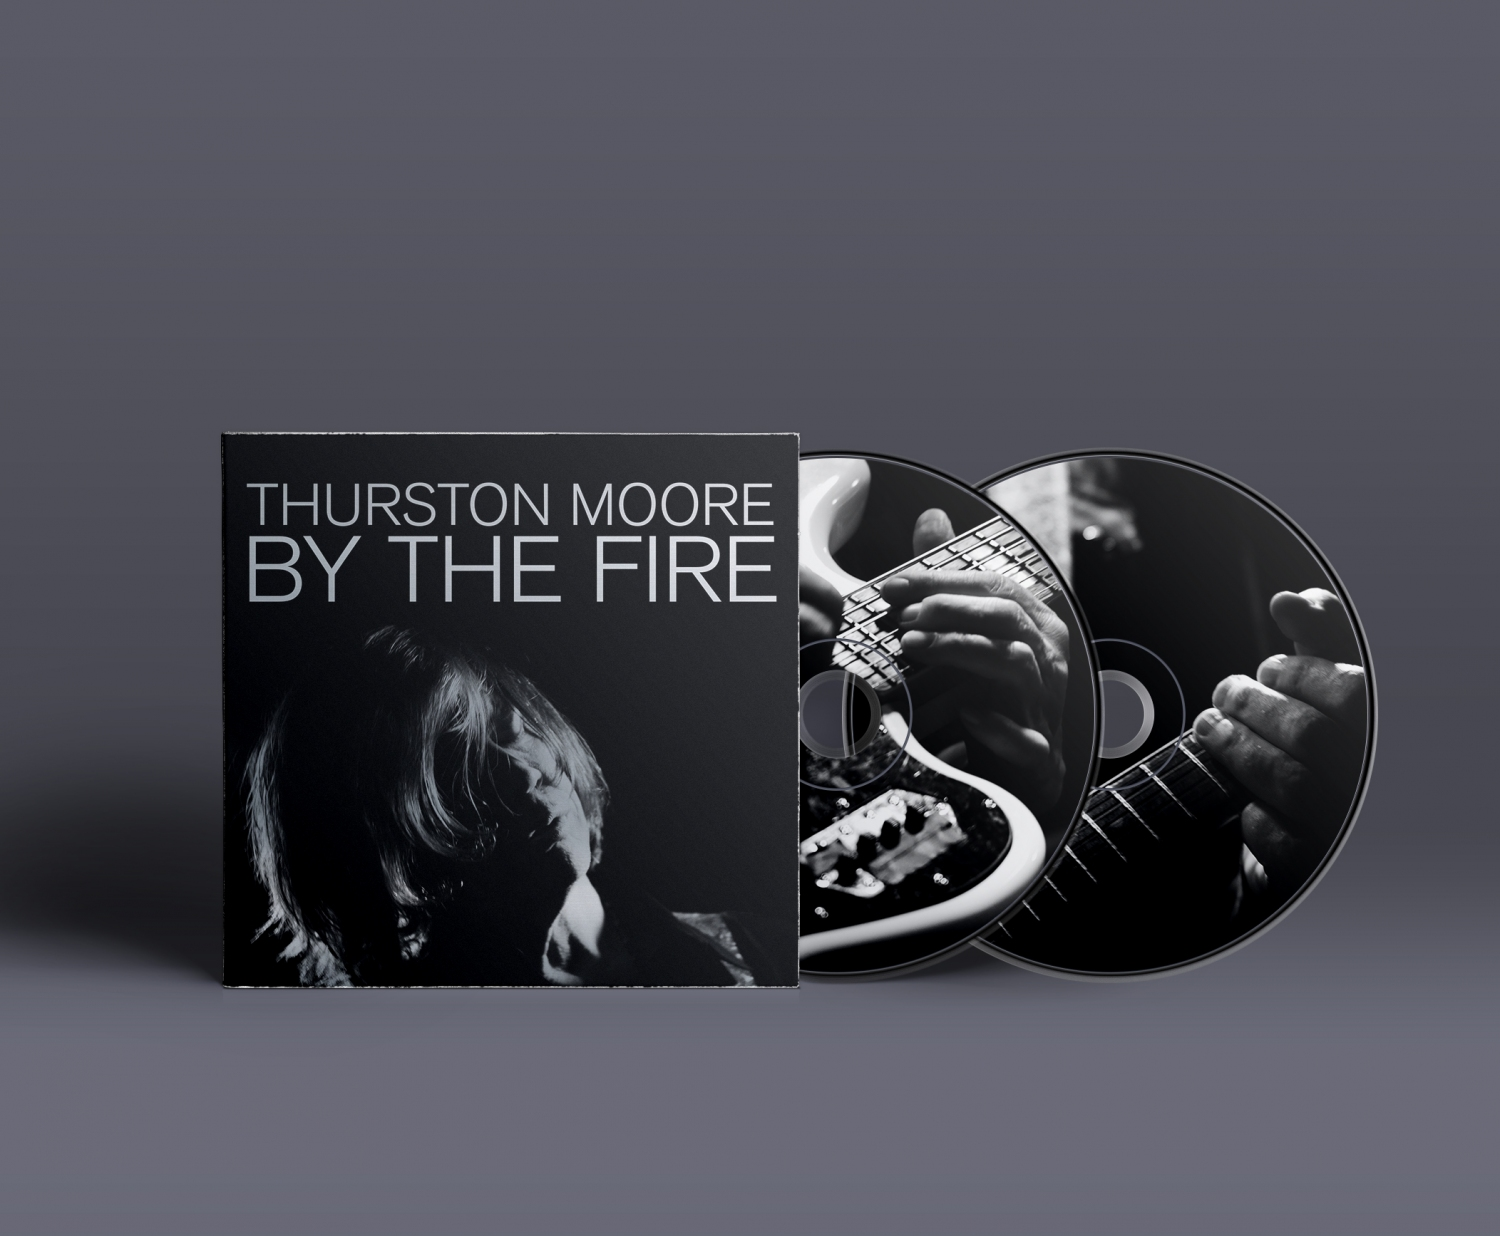 THURSTON MOORE'S LONG DAY'S JOURNEY INTO 2020